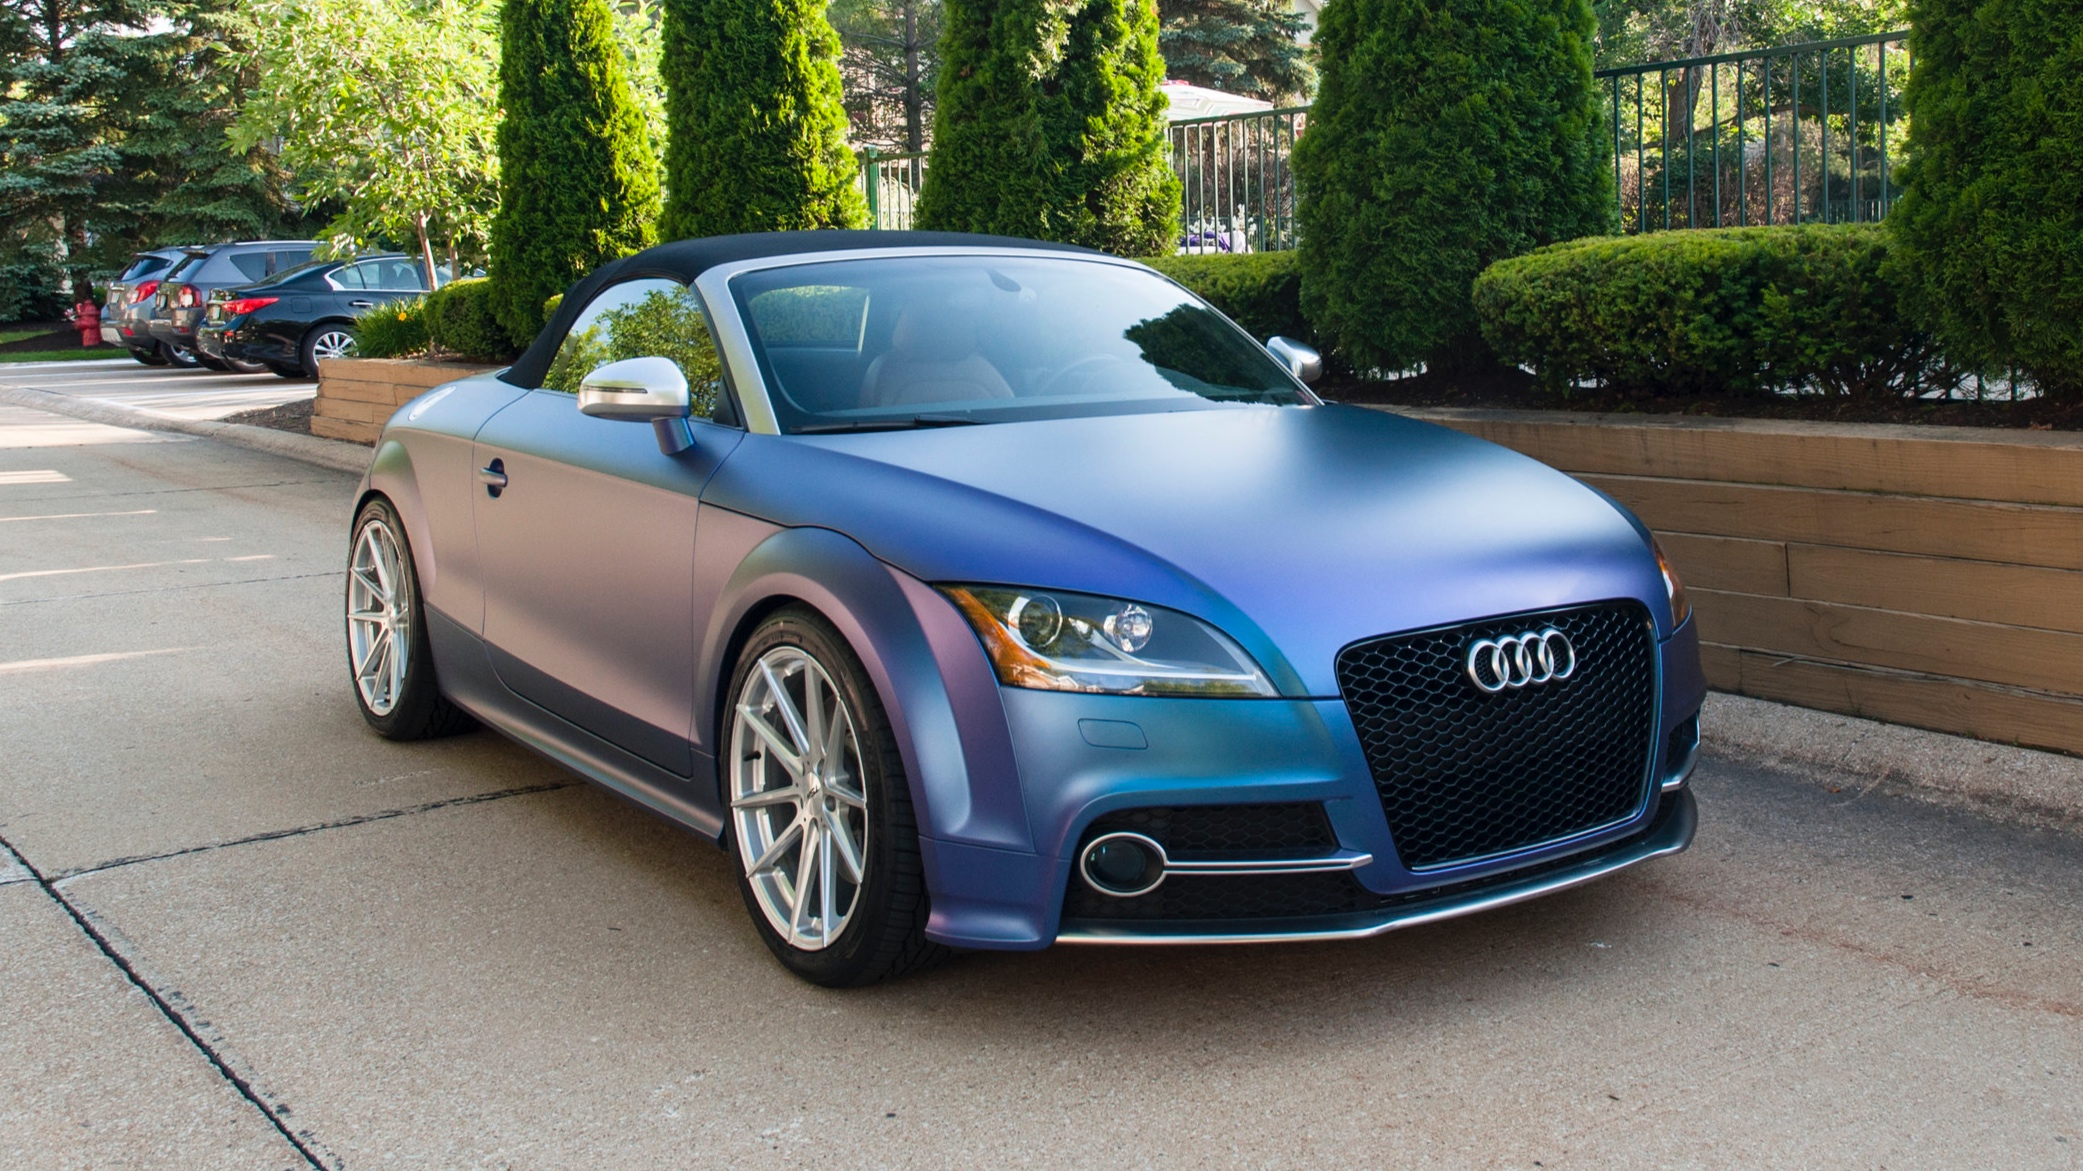 Audi TT-S - Wrapped in KPMF Matte Blue/Purple Iridescent and Satin Chrome, TSW Wheels